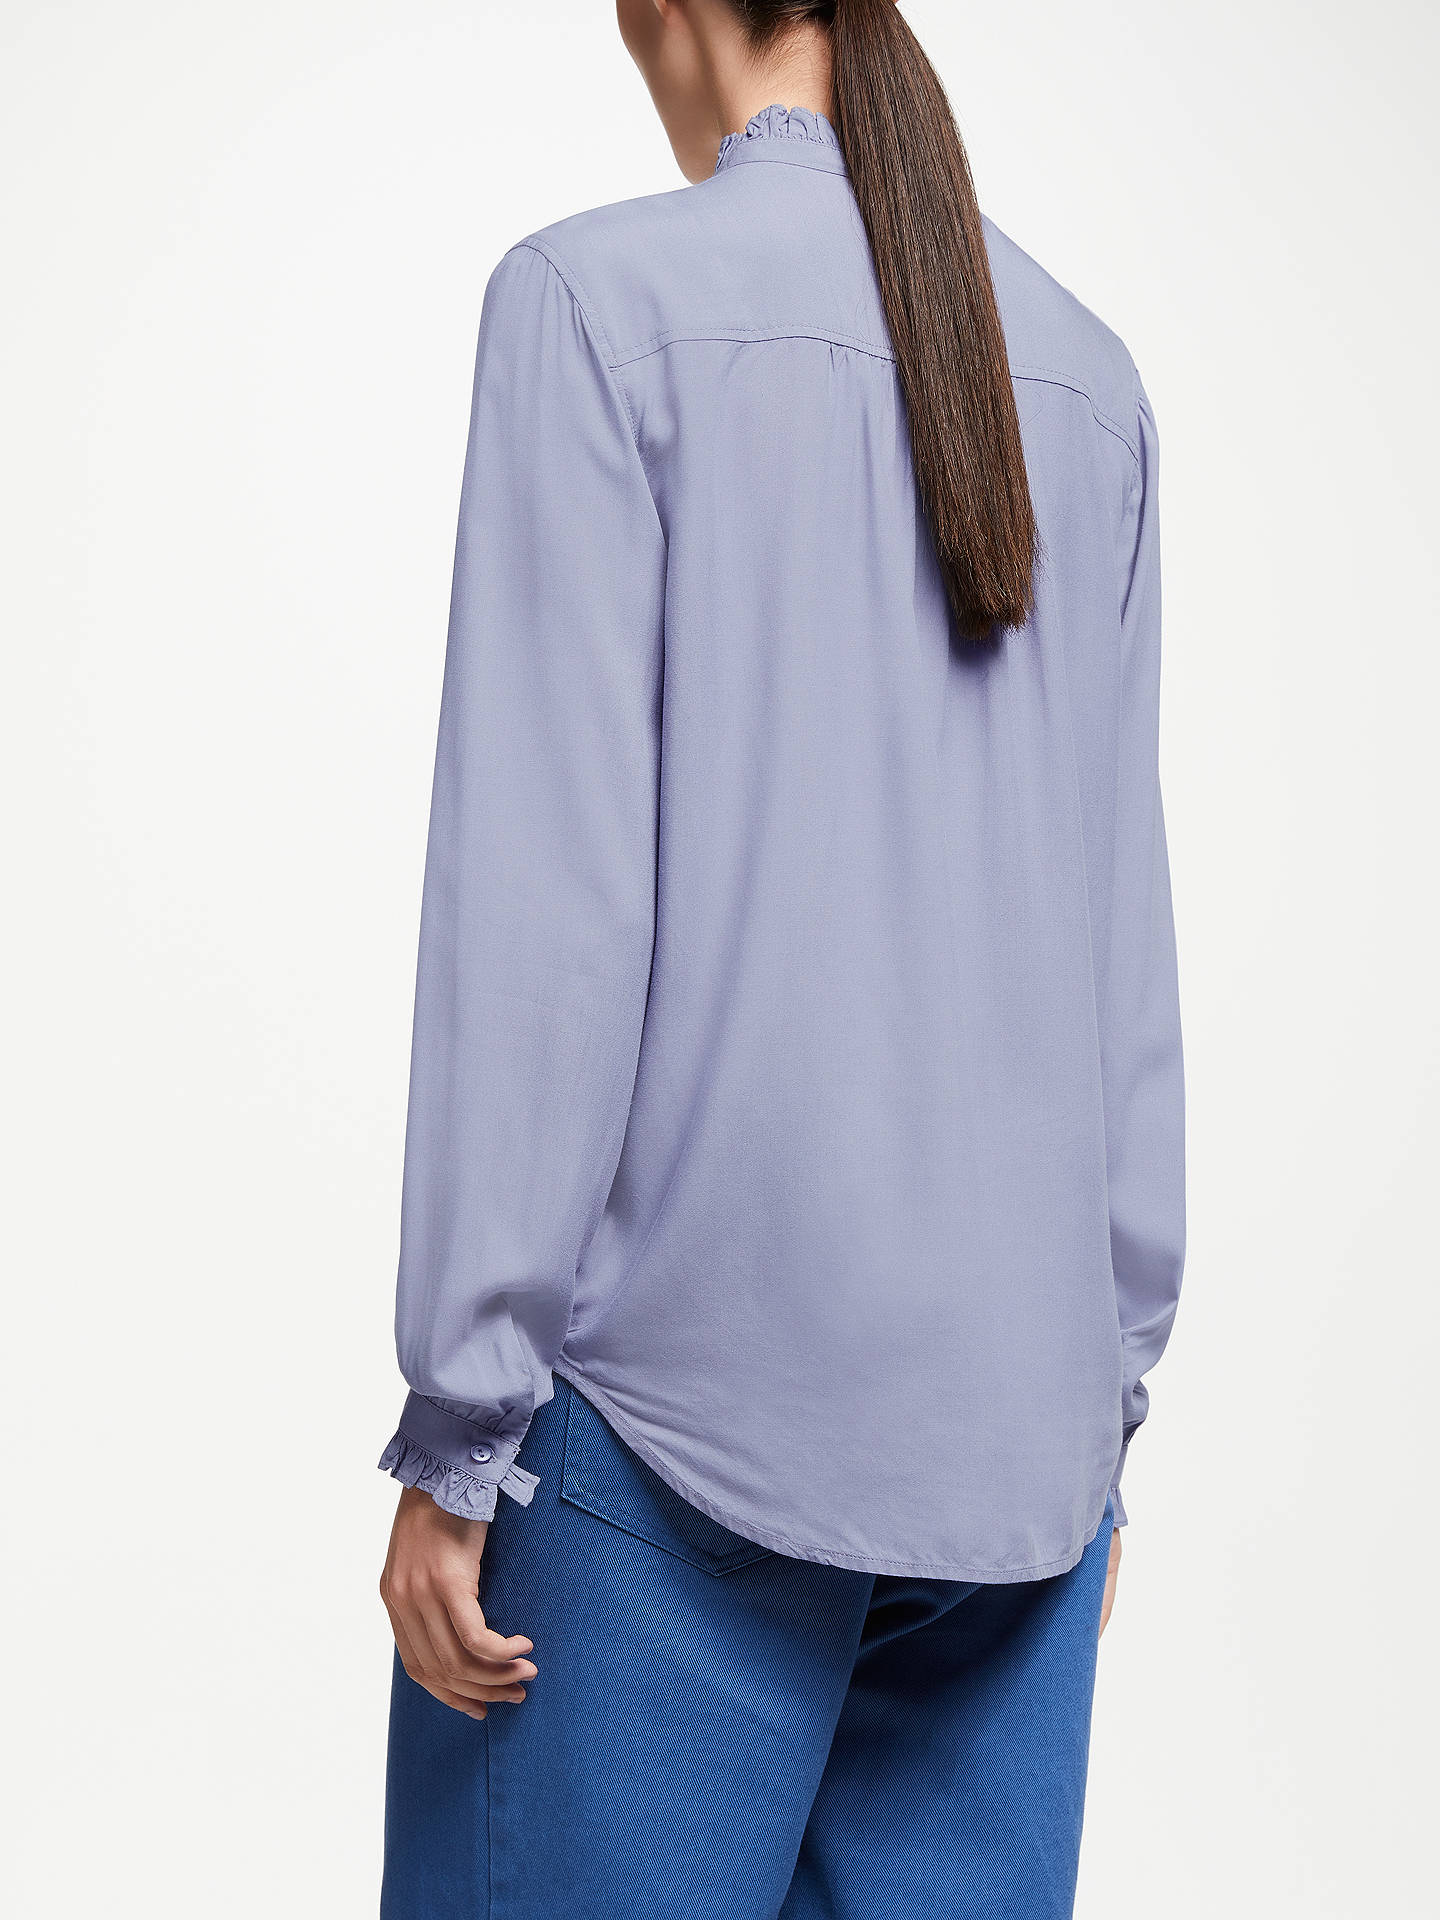 Buy John Lewis & Partners Frill Neck Blouse, Washed Blue, 8 Online at johnlewis.com